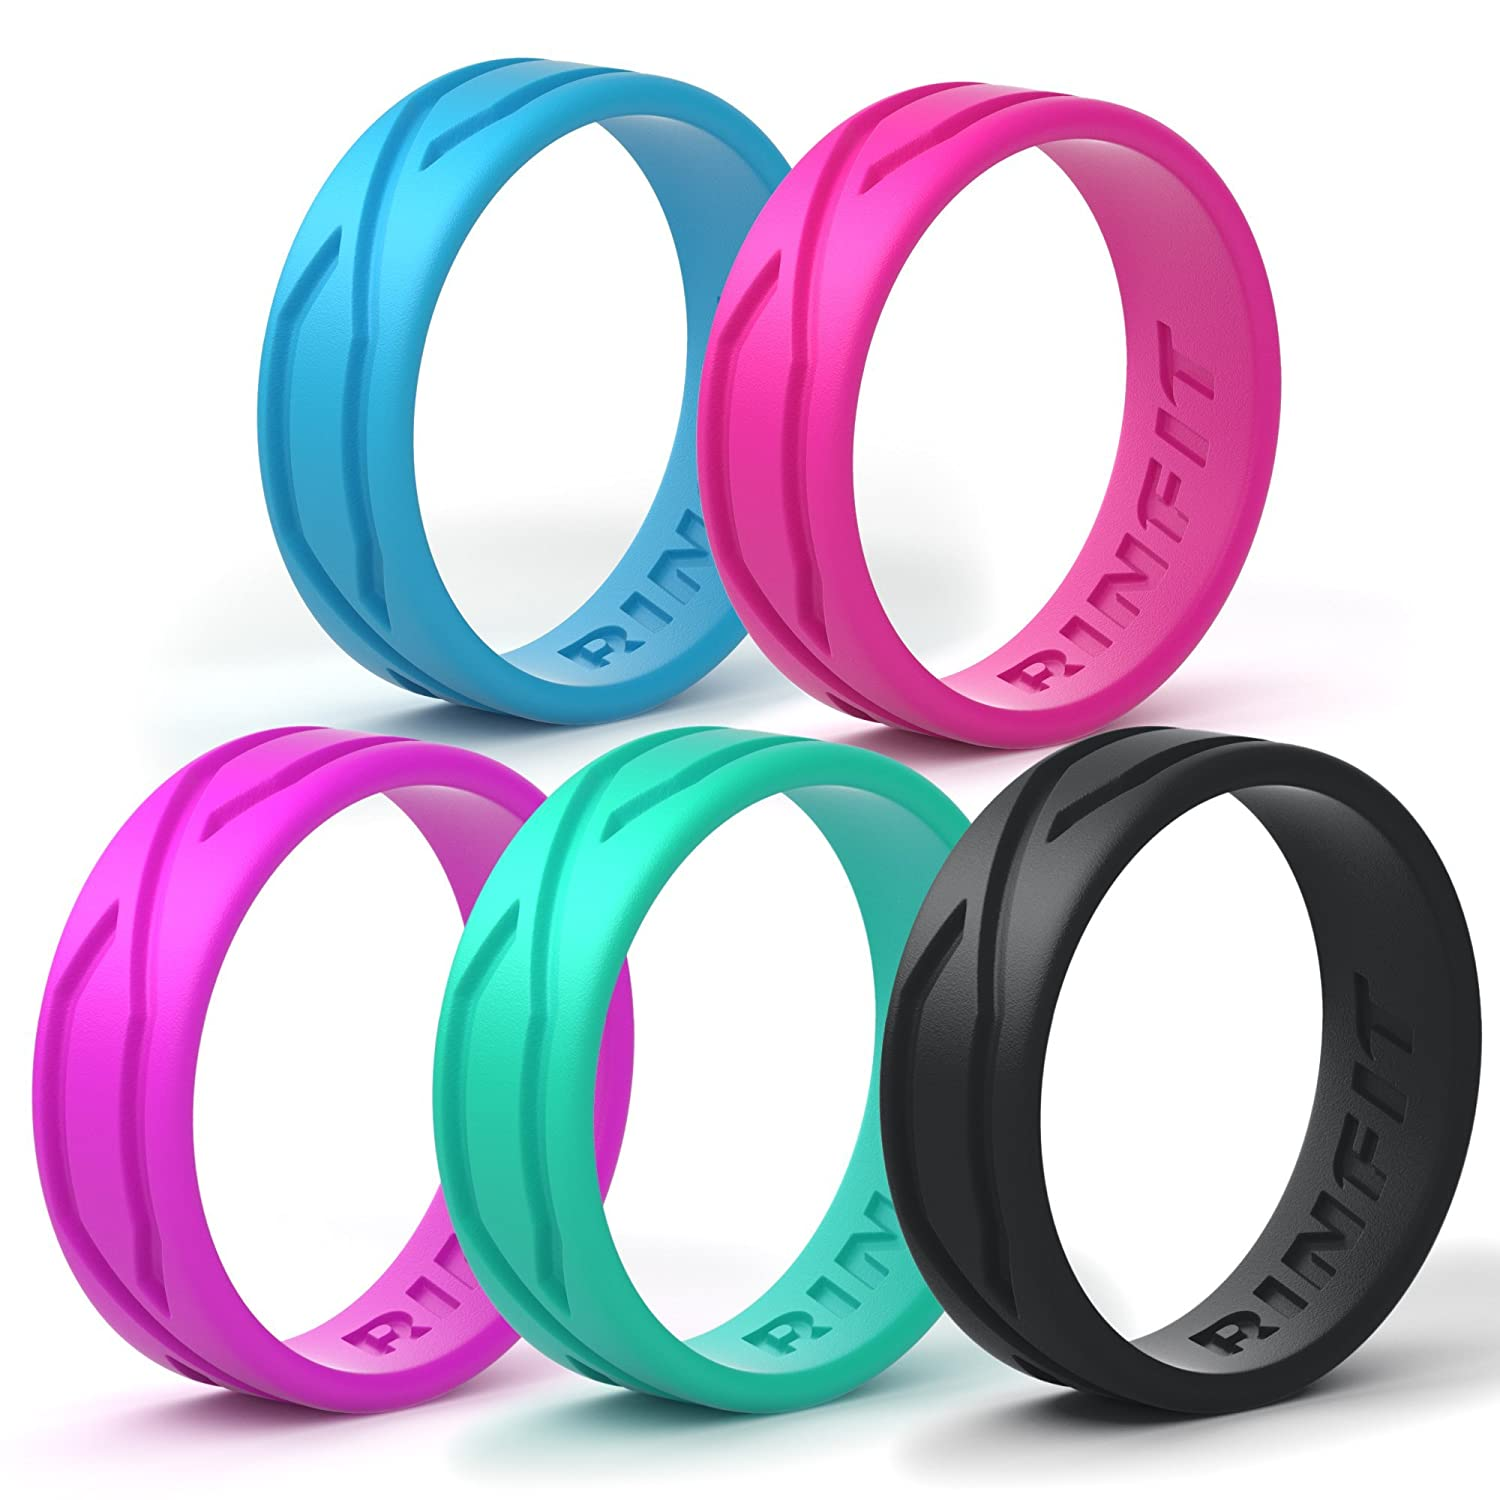 men of recon wedding silicone inspirational designs desert rings tan fixate ring s rubber bands luxury